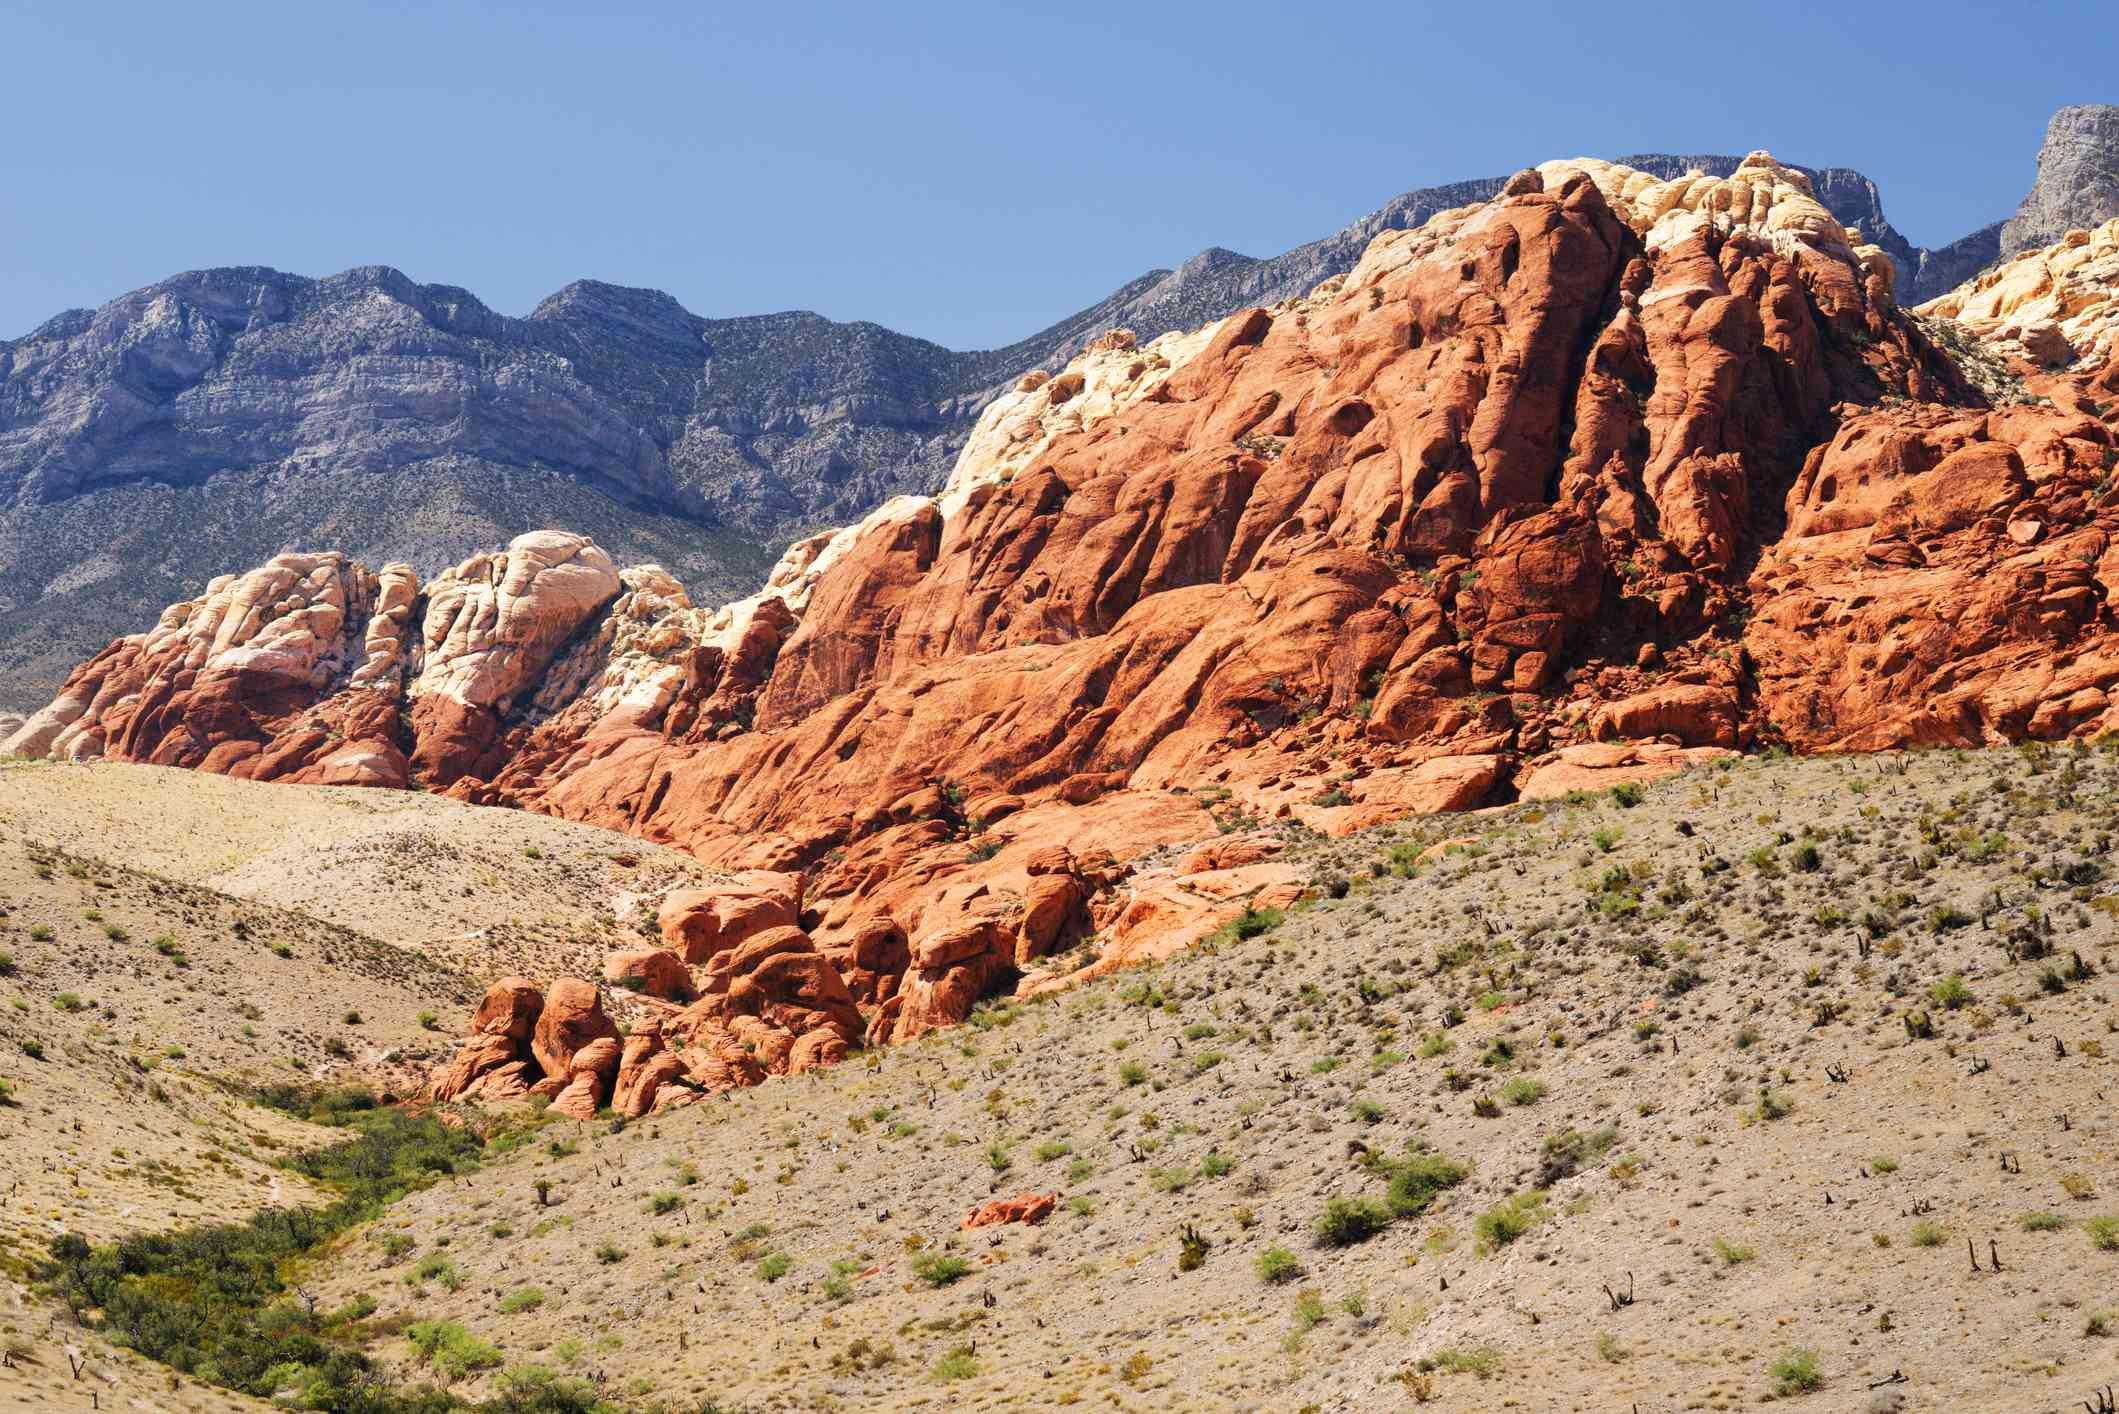 The fire-red rocks of Turtlehead Mountain